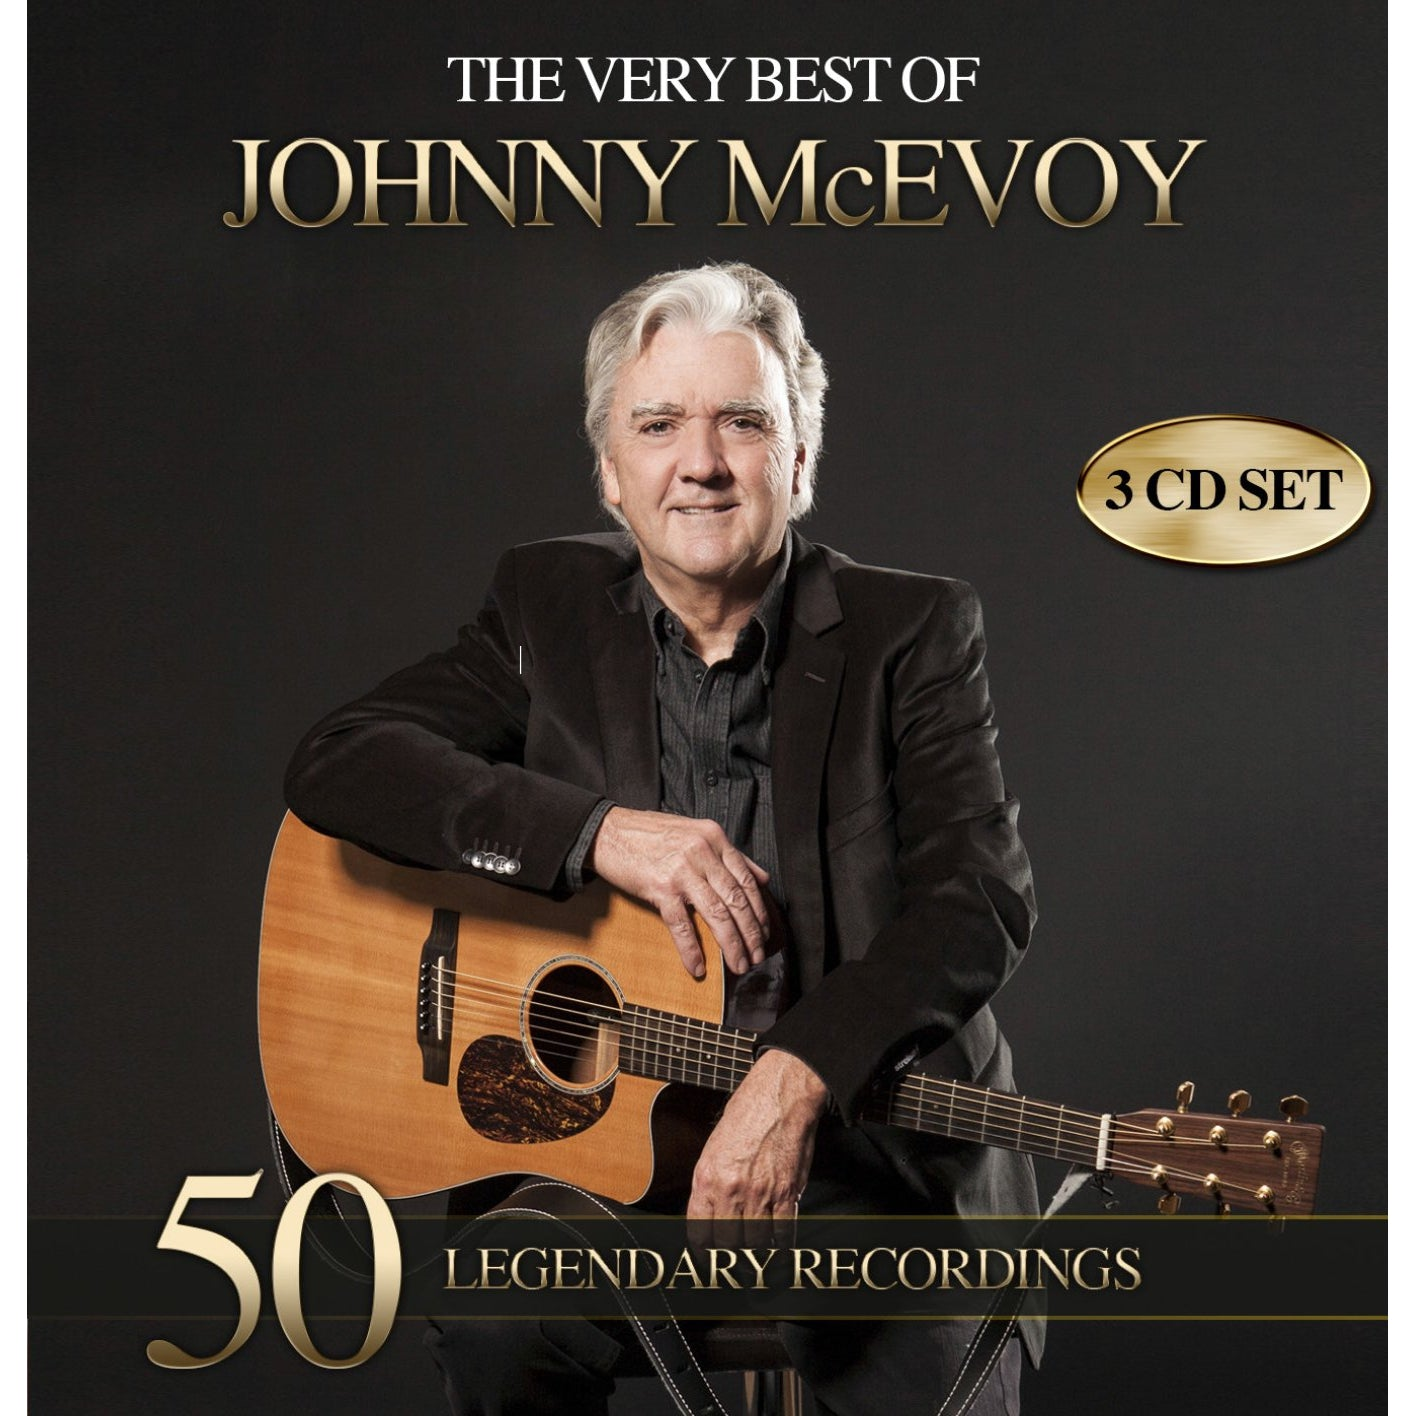 The Very Best Of: 50 Legendary Recordings - Johnny McEvoy [CD]